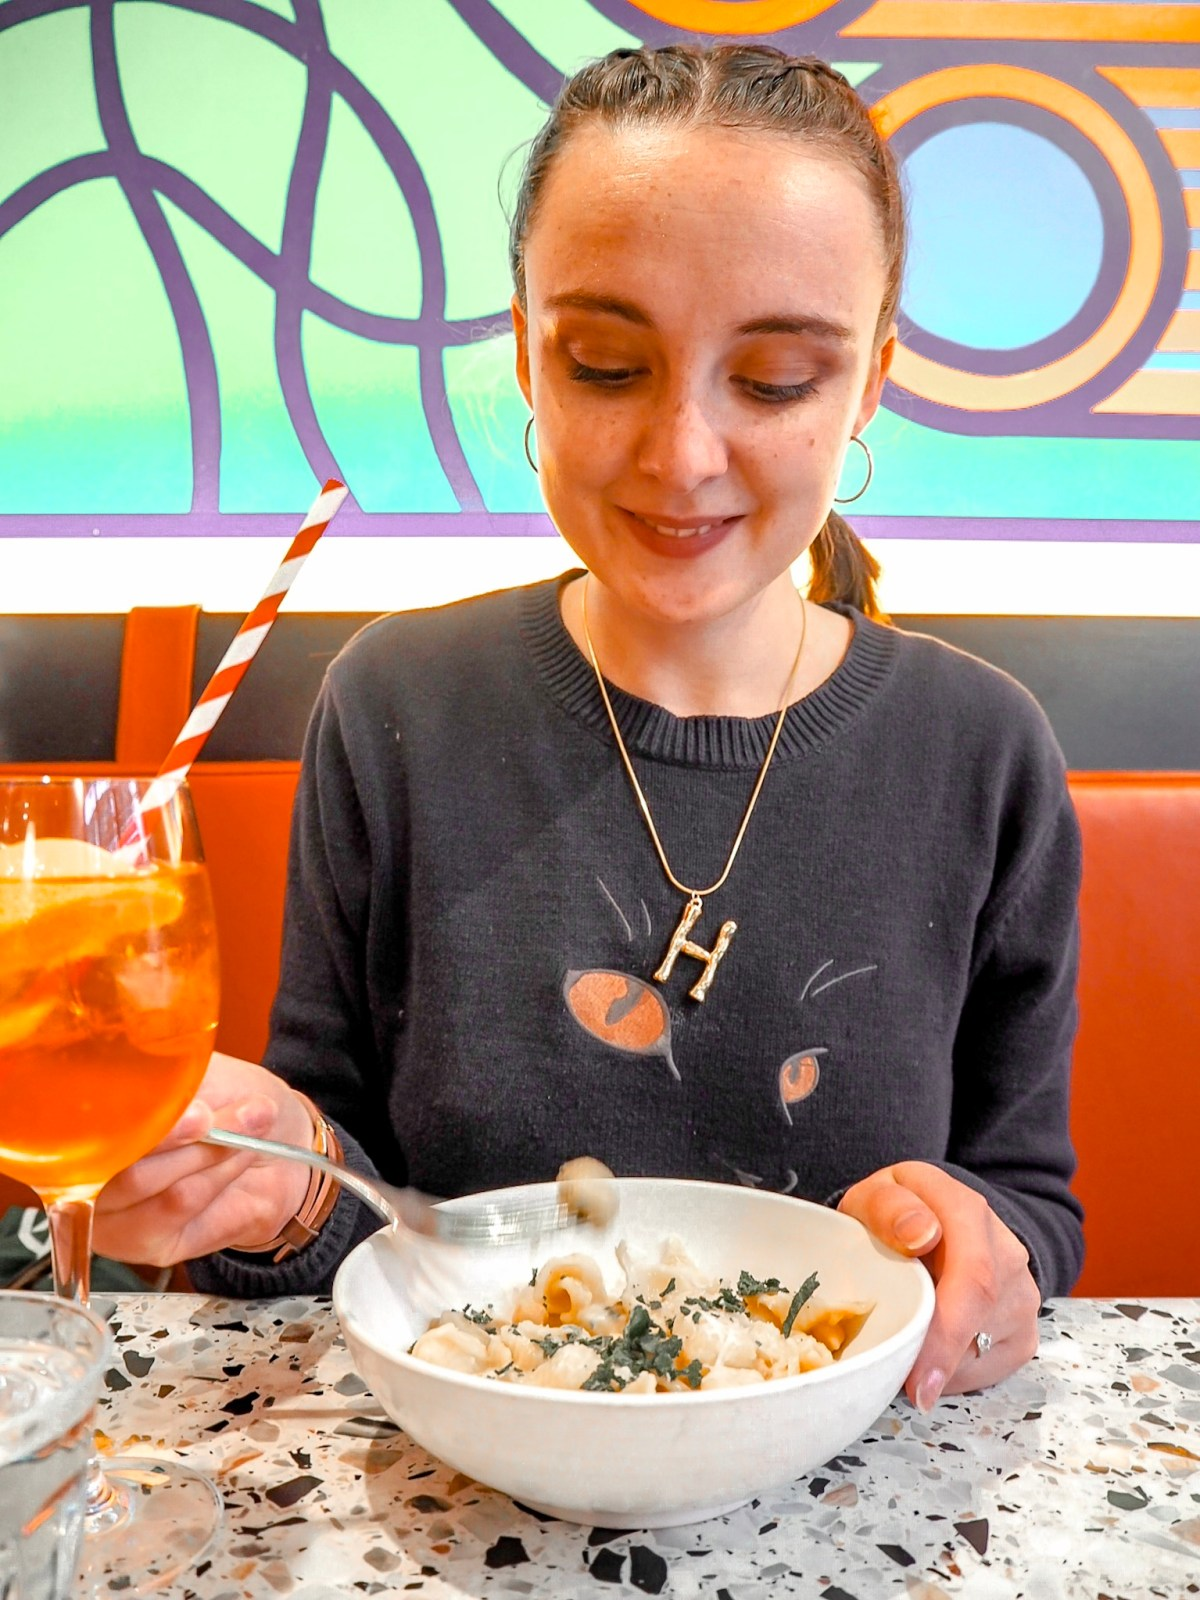 Drinkswithhebe with pasta and aperol spritz